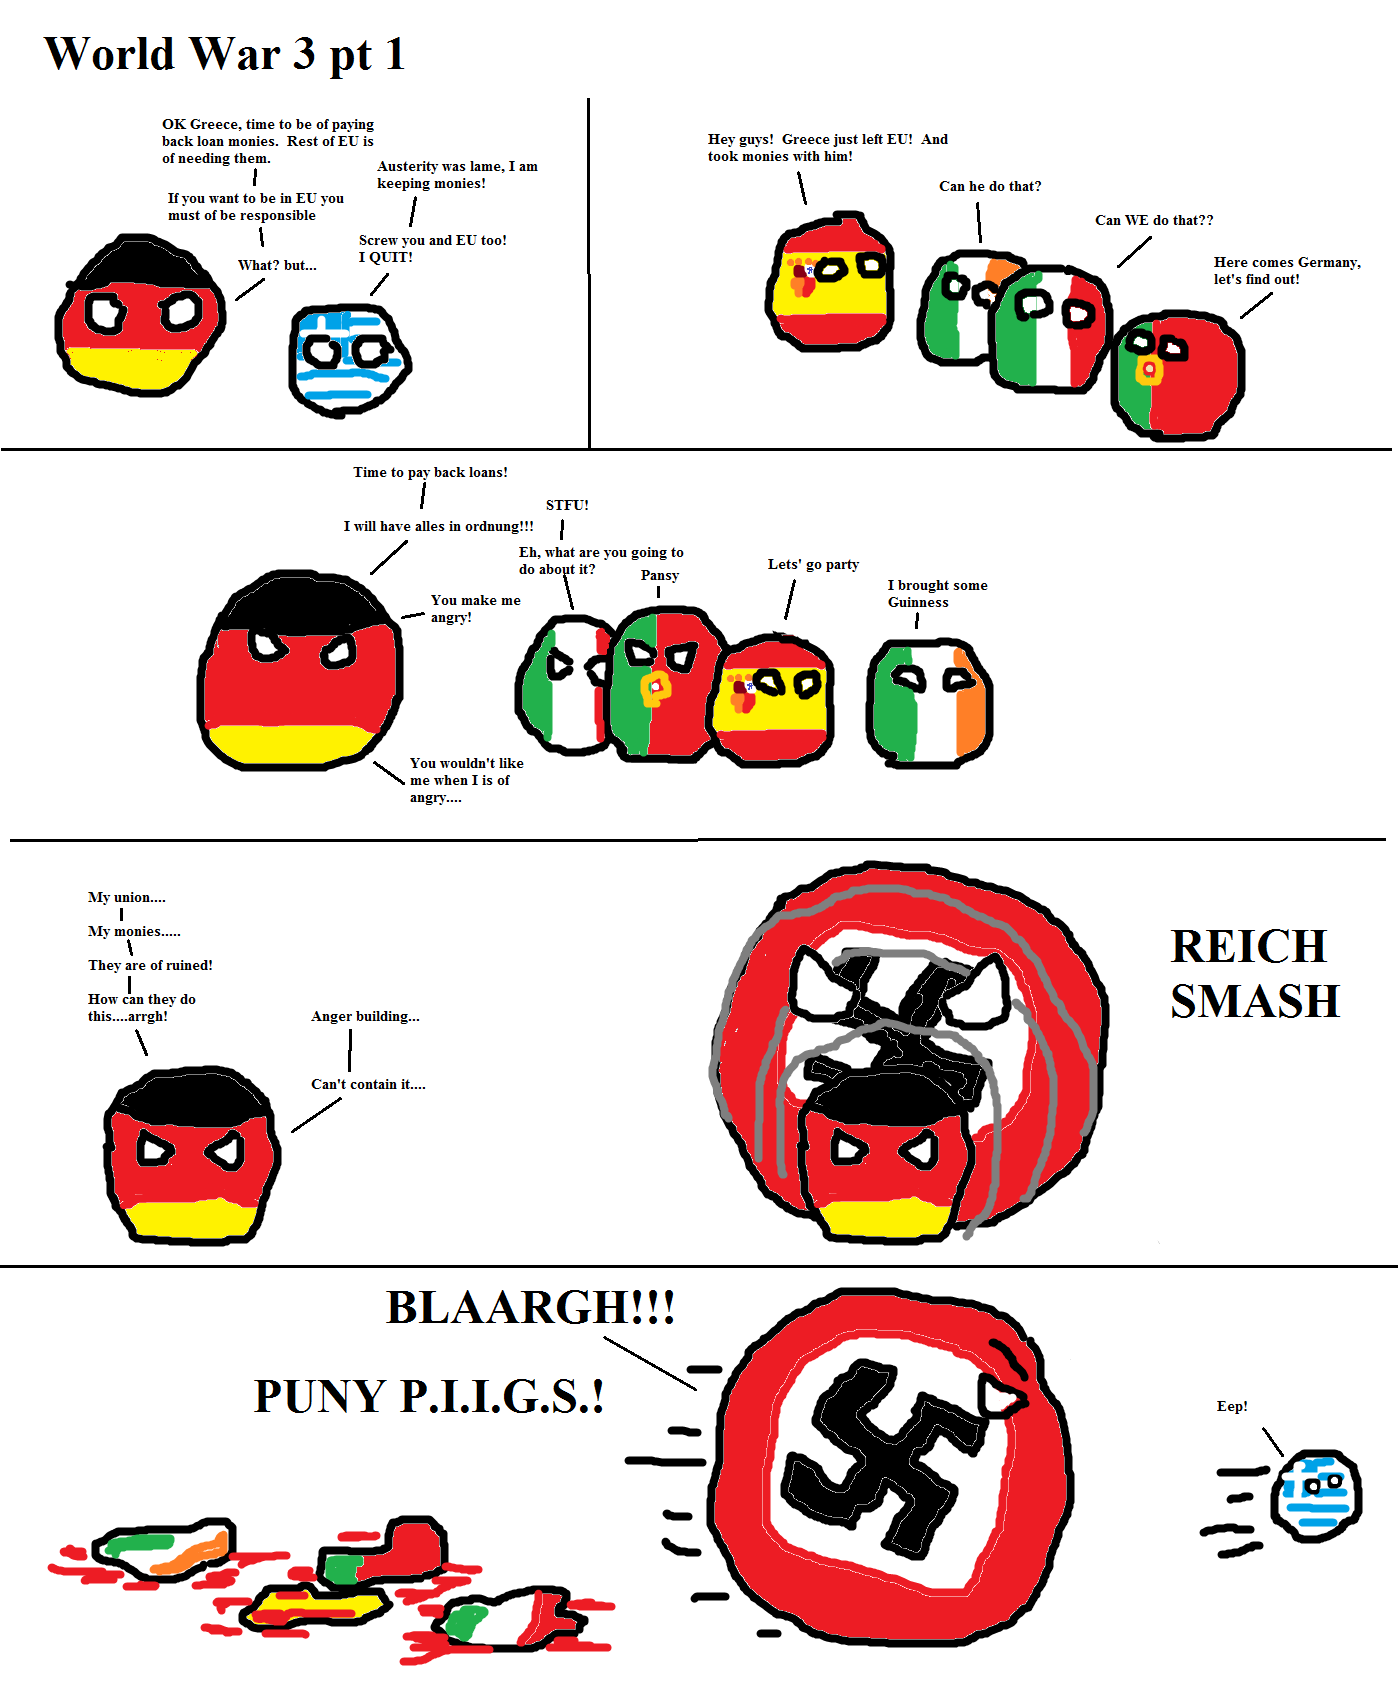 WW3 Part 1 - Polandball